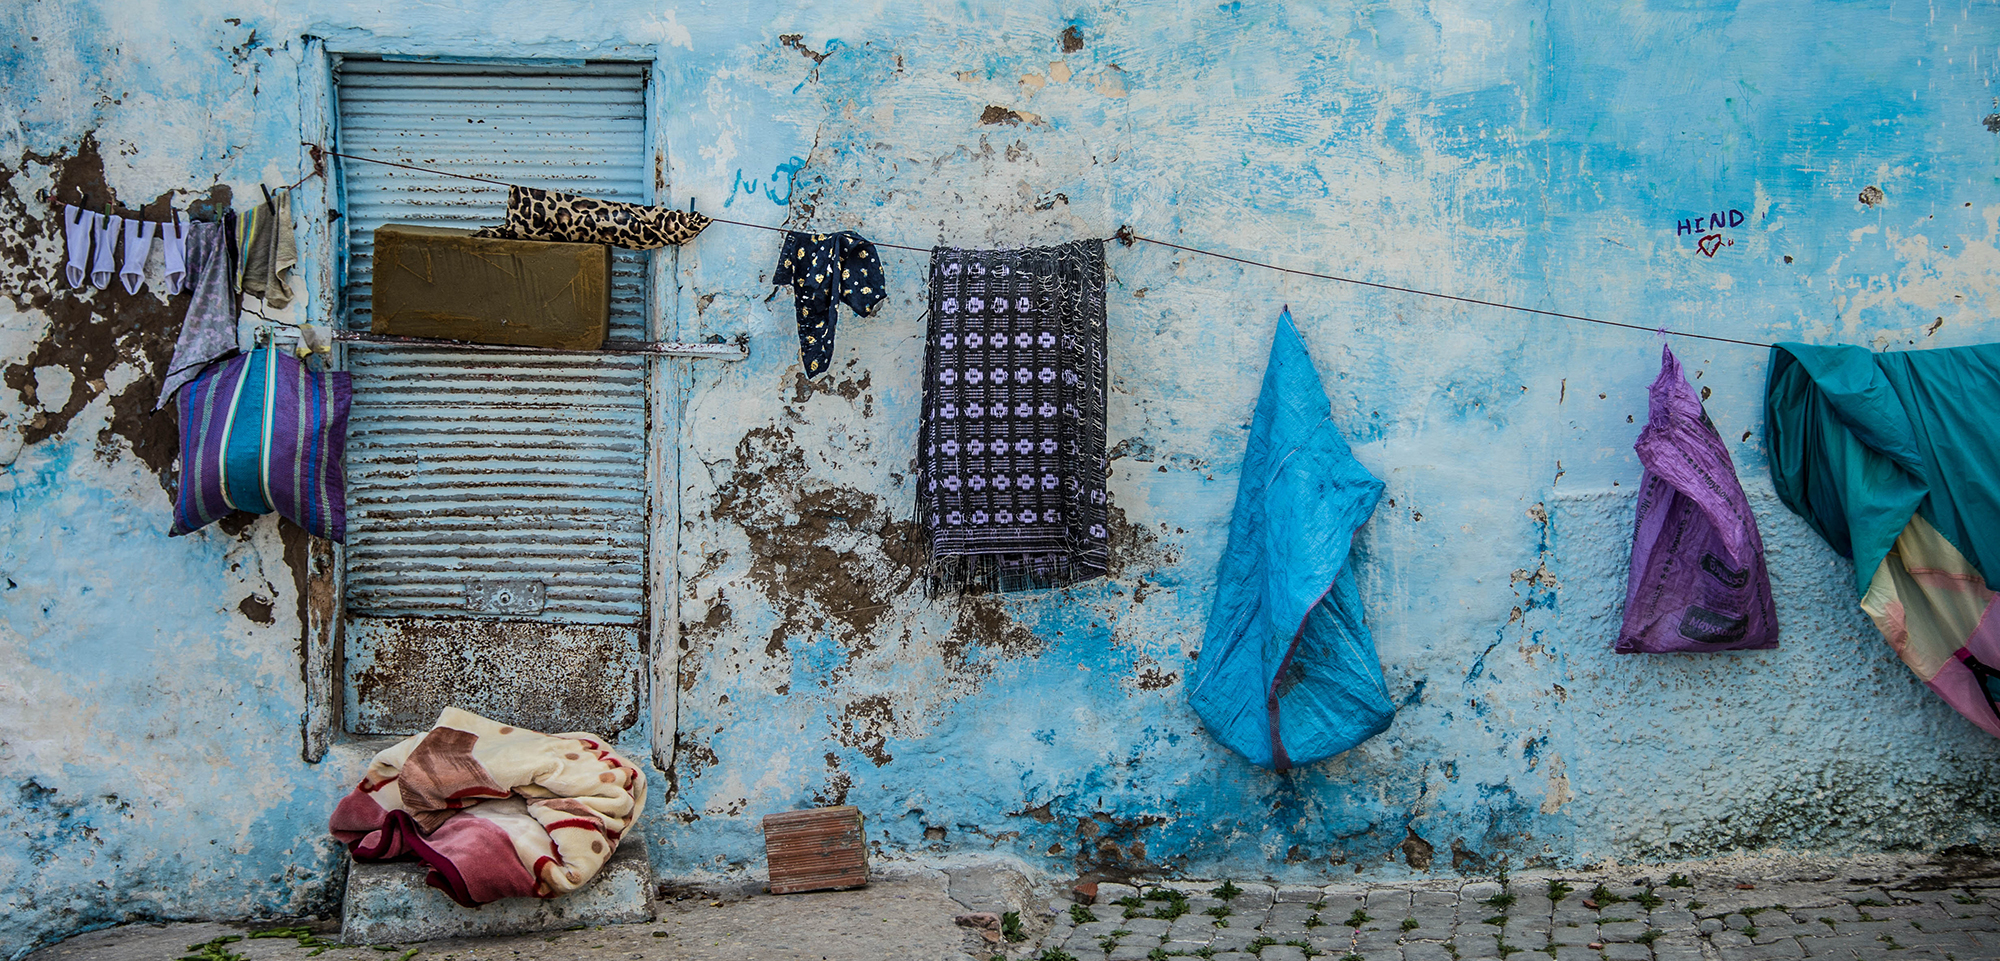 Morocco, blue and beautiful